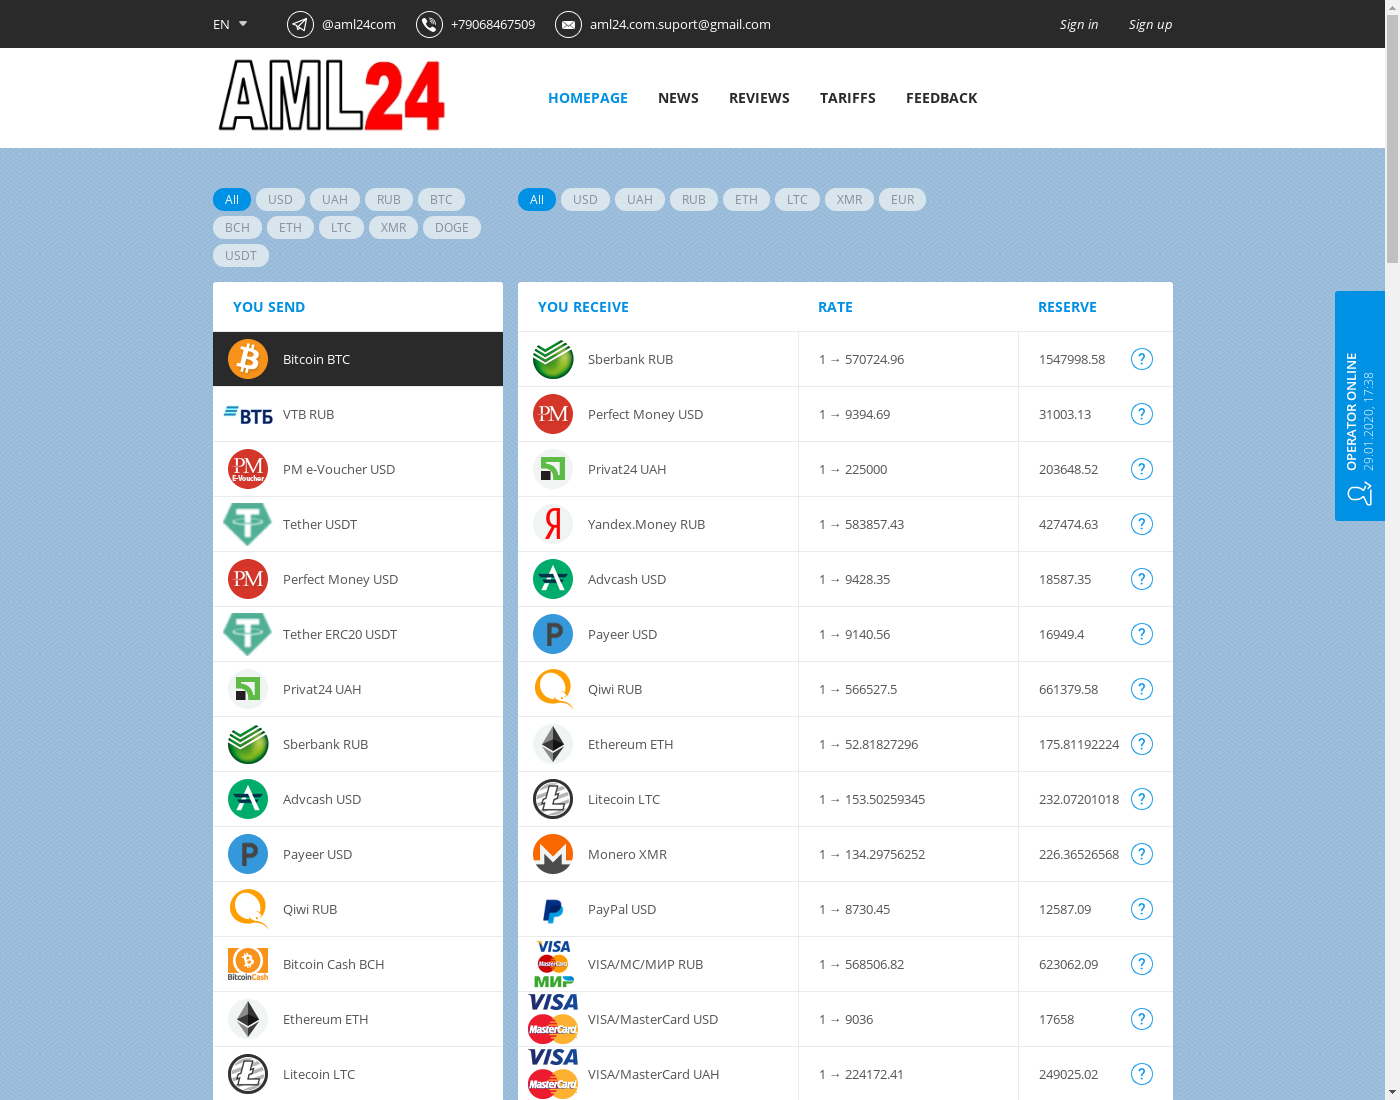 AML24 user interface: the home page in English